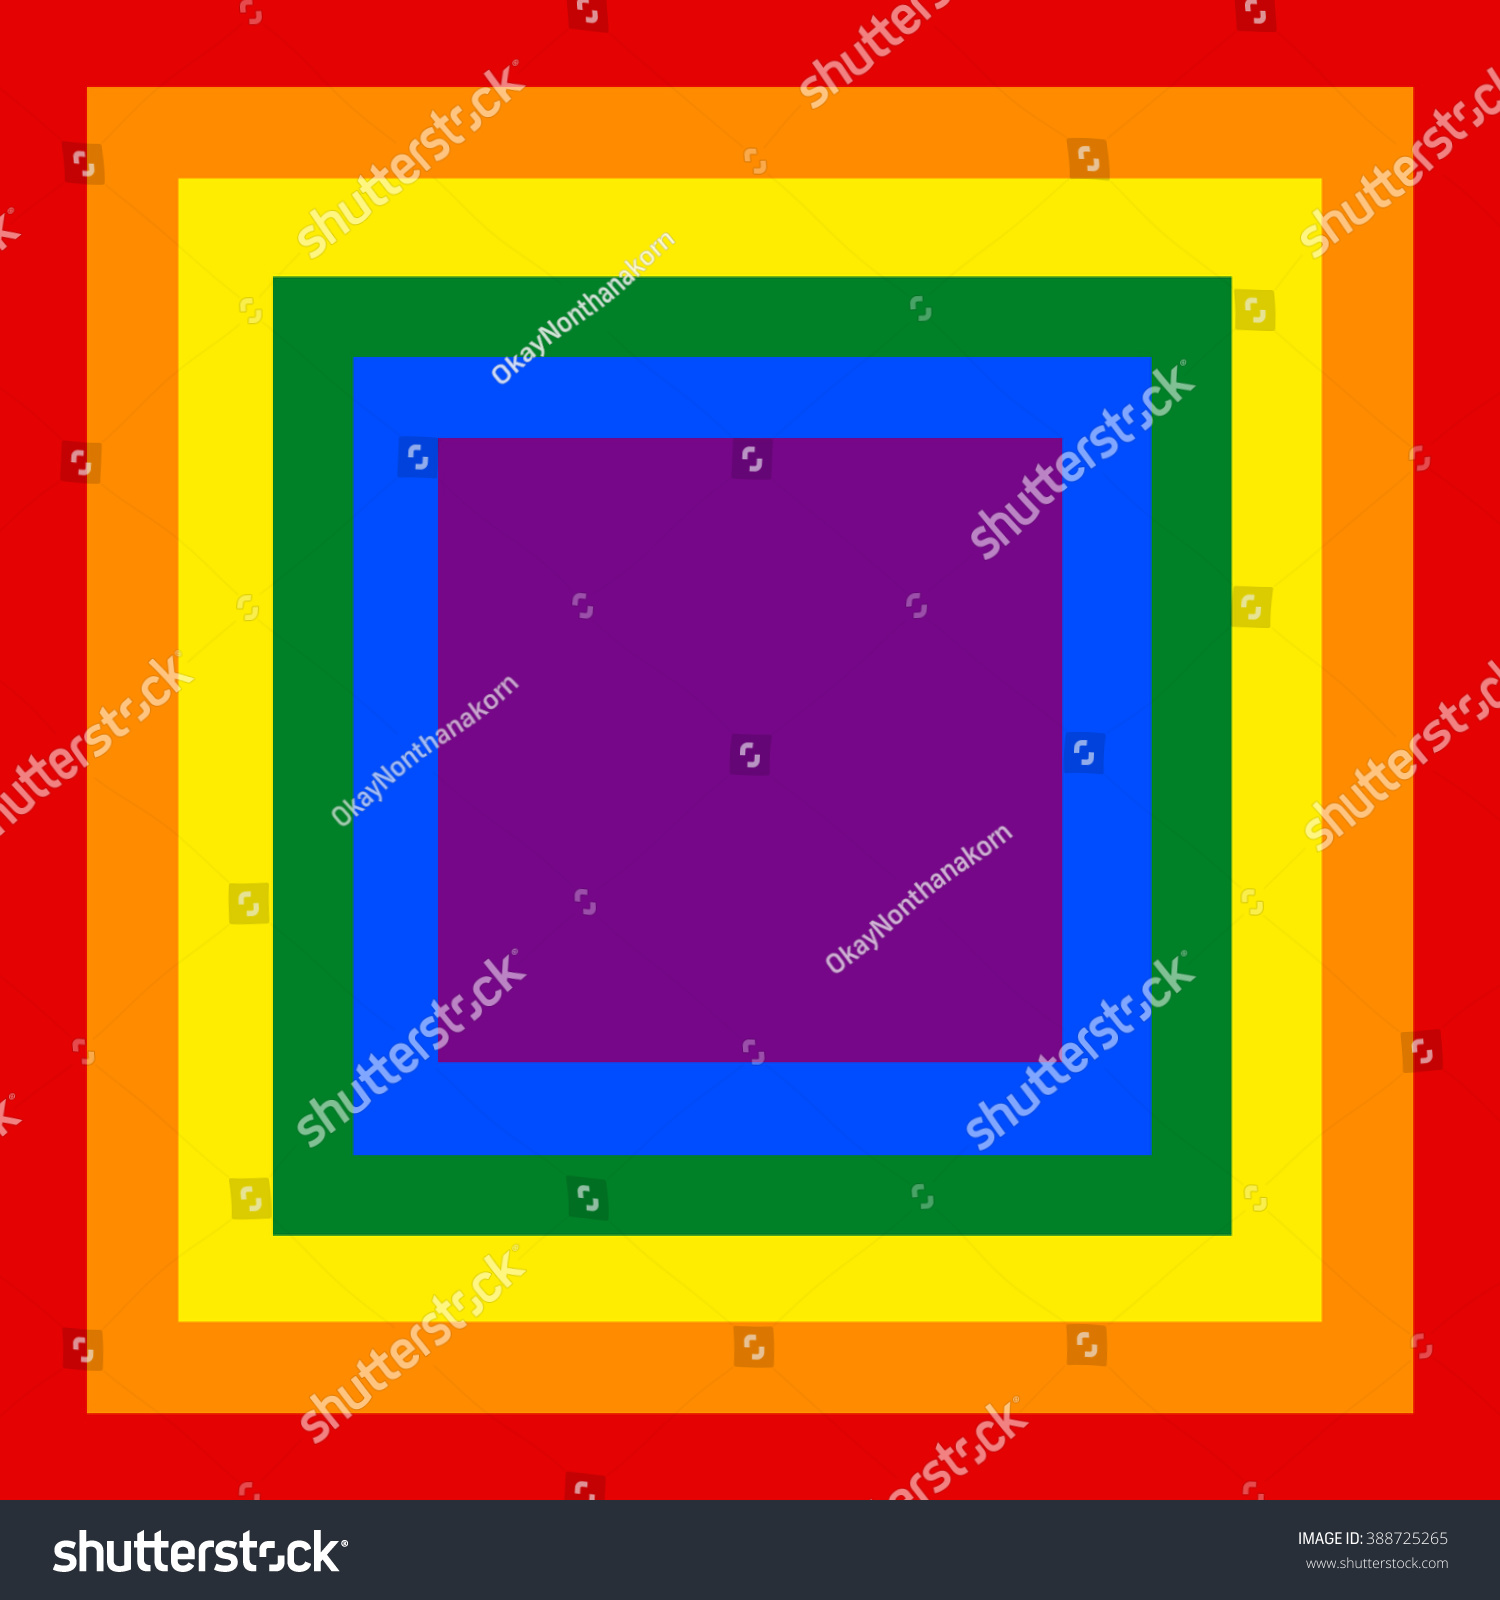 Pantone color symbol lgbt grouplgbt glbt stock vector 388725265 pantone color of symbol of lgbt grouplgbt or glbt is an initialism that stands biocorpaavc Choice Image